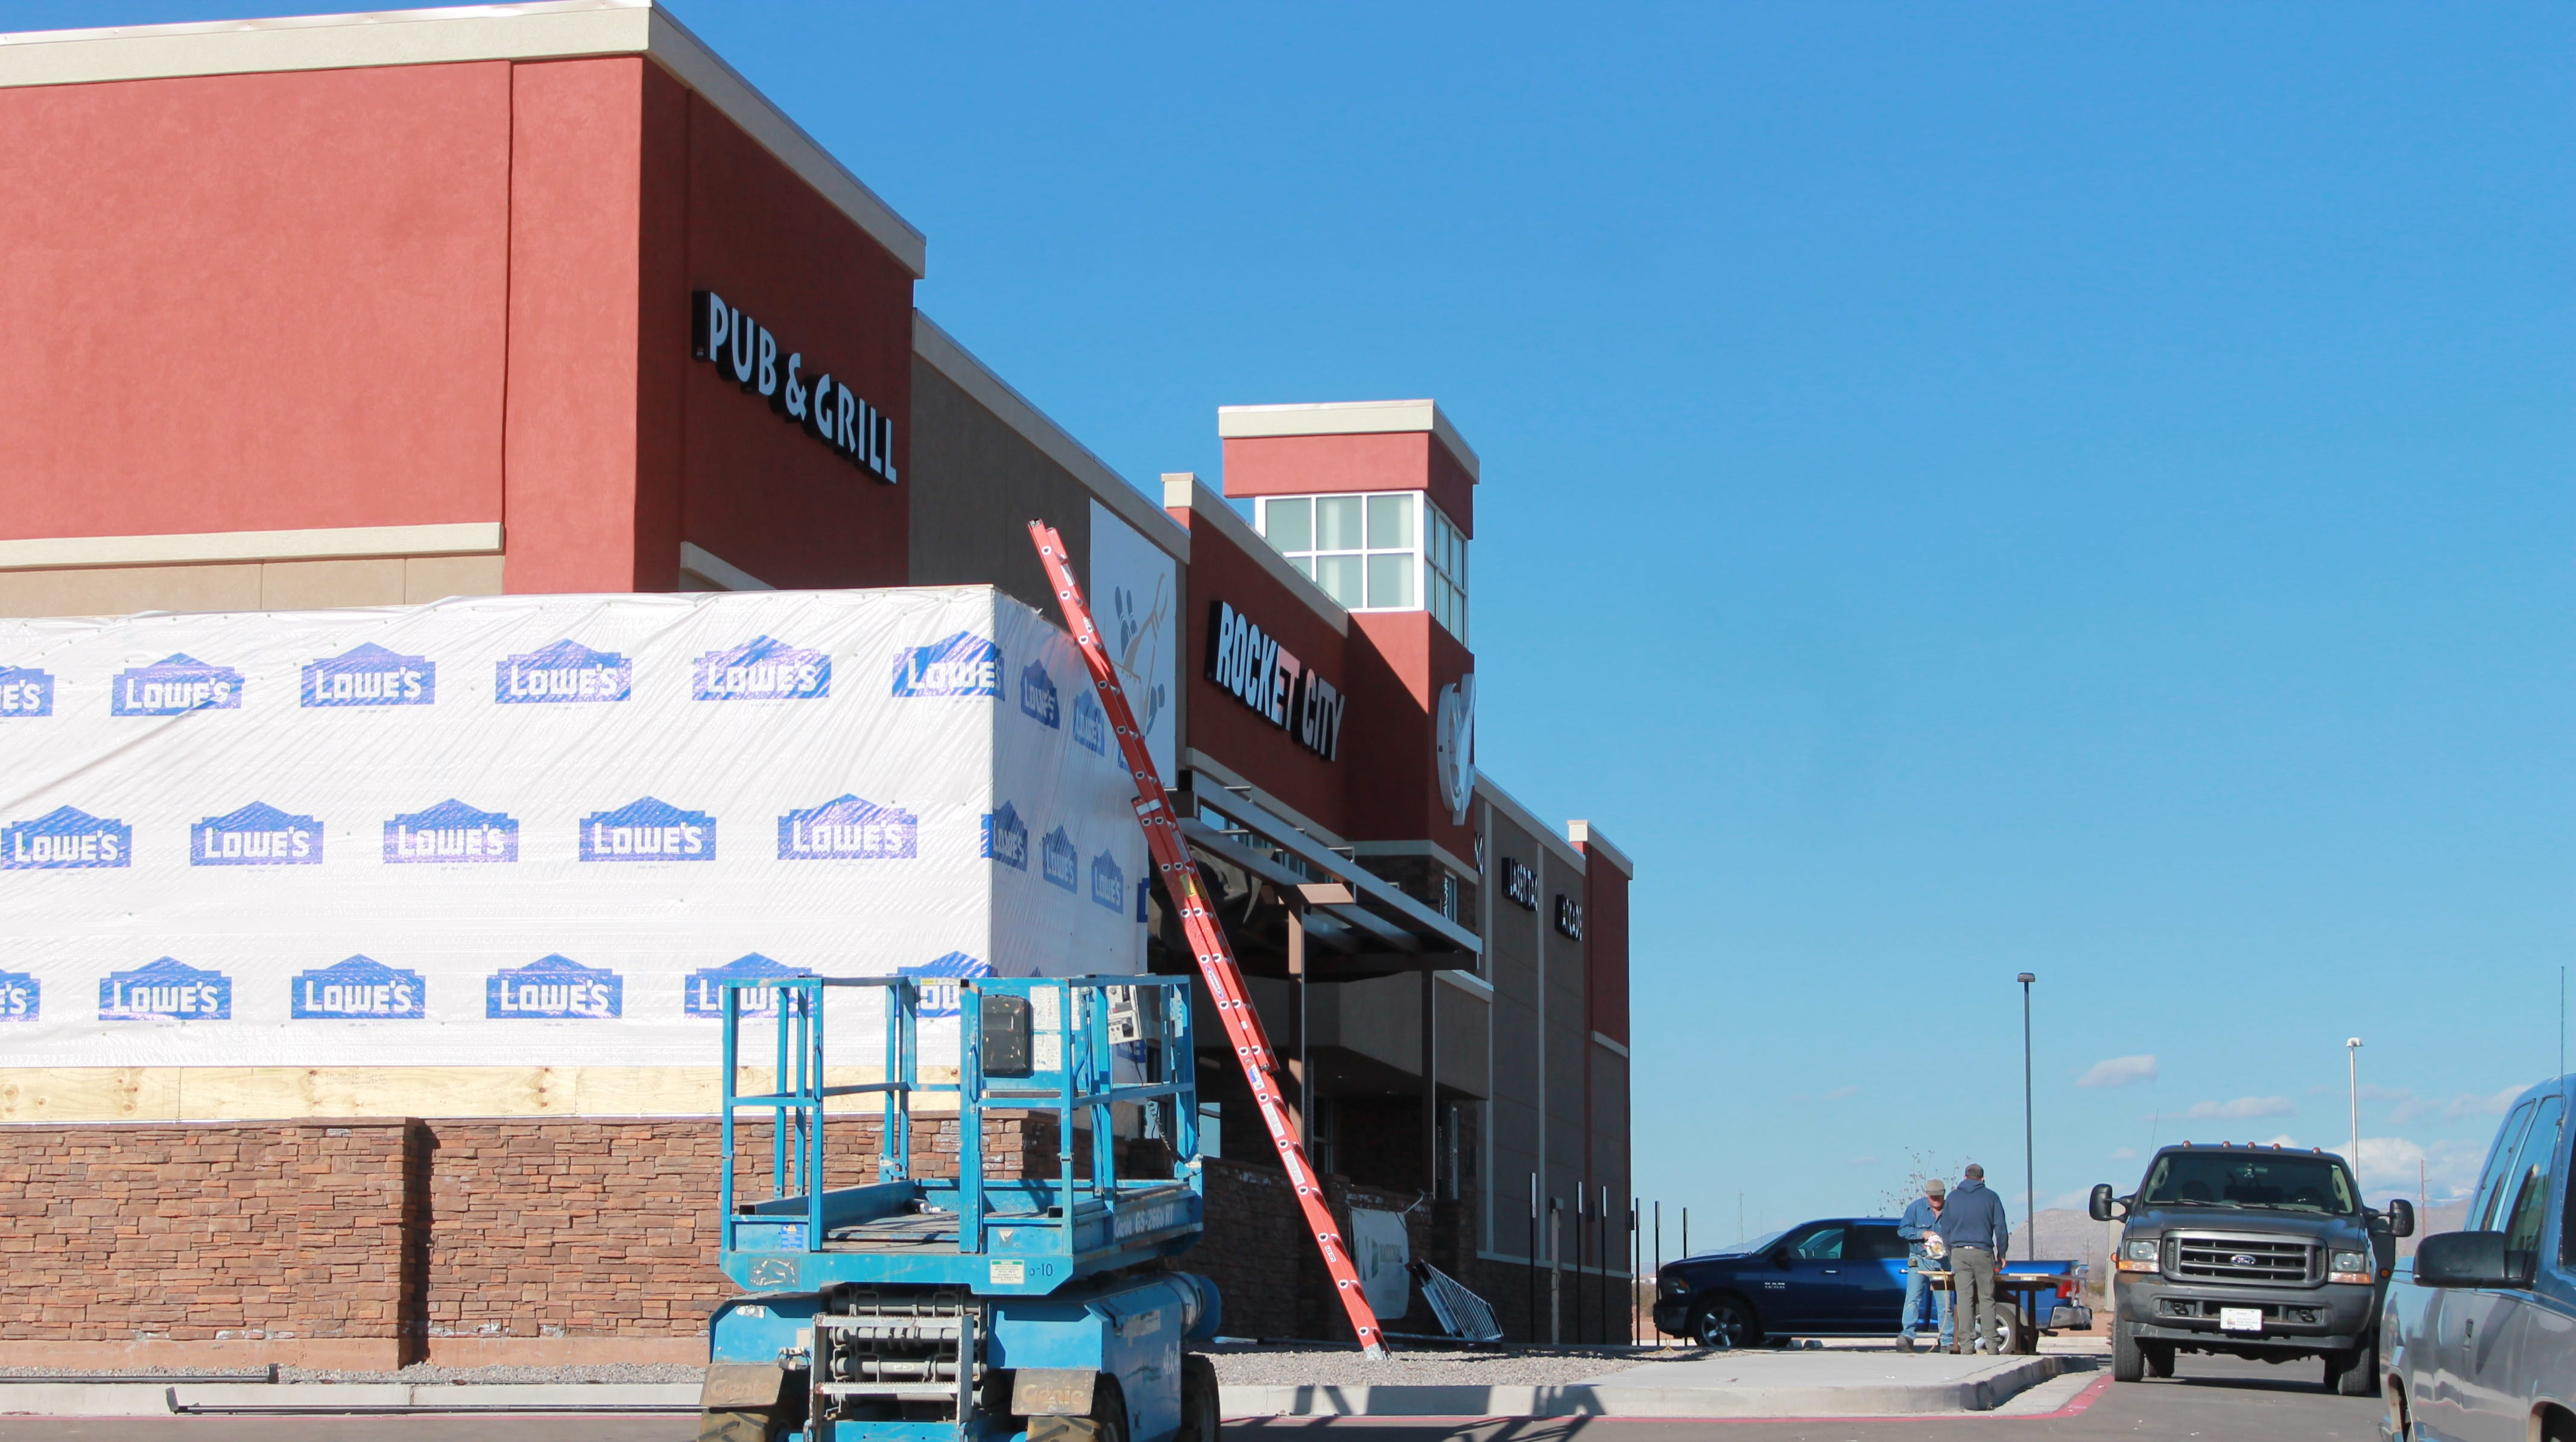 Work continues on the Rocket City Family Fun Center in order to meet the projected grand opening date of Friday, Jan. 4.